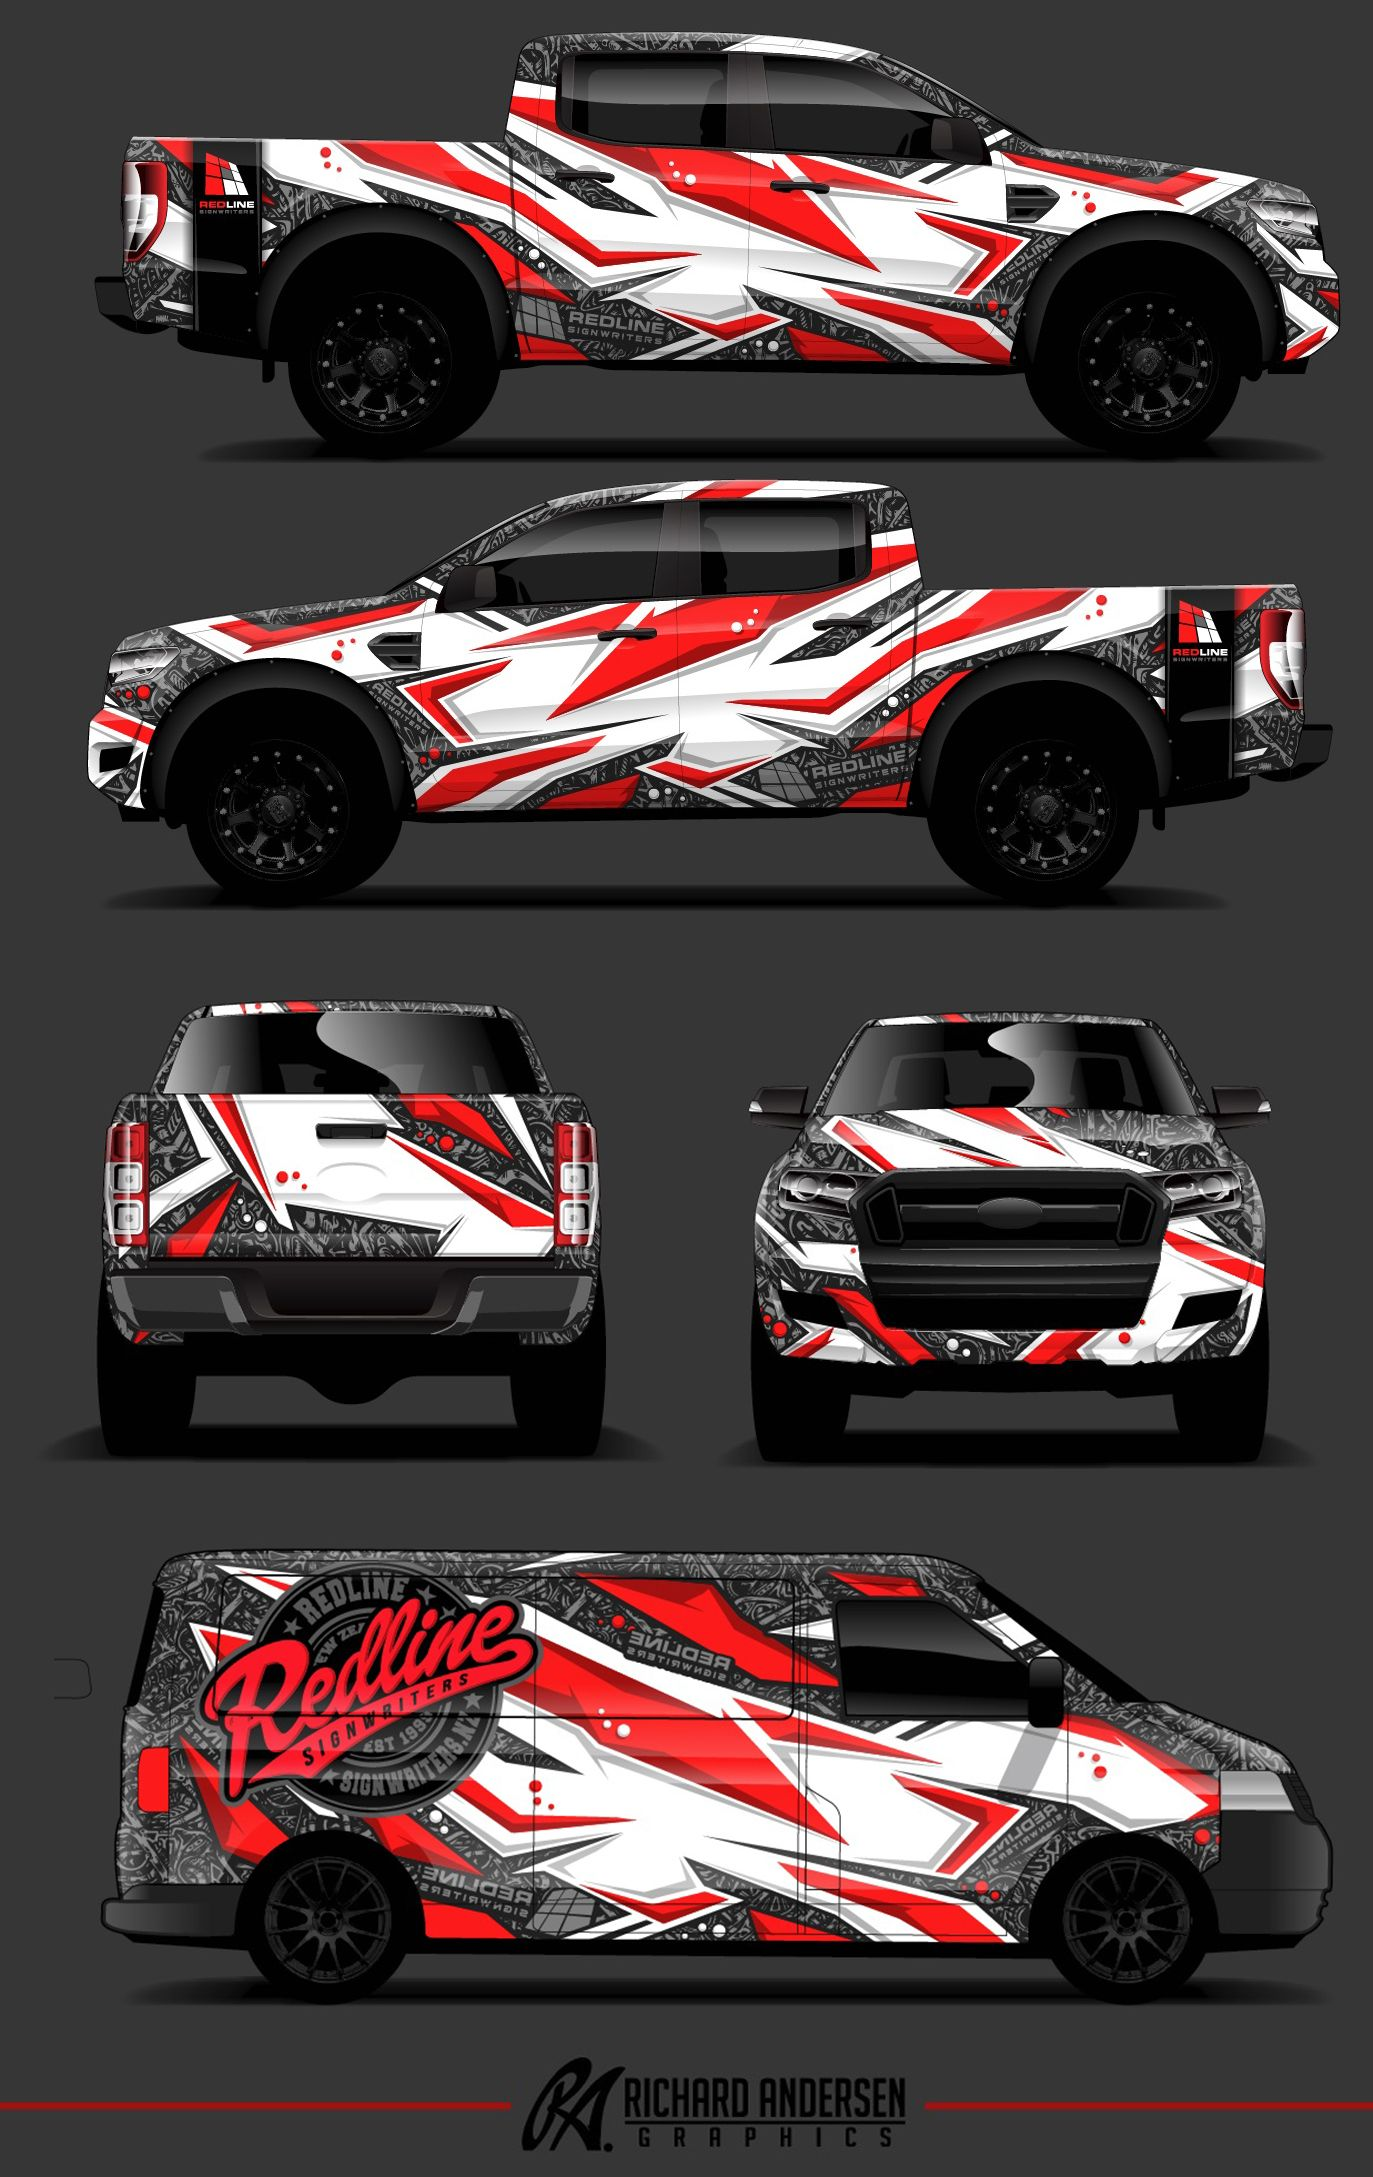 Car Livery Design For TC Open Driver Ace Robey On Seat Leon TCR - Racing car decals designpng race car wraps pinterest cars